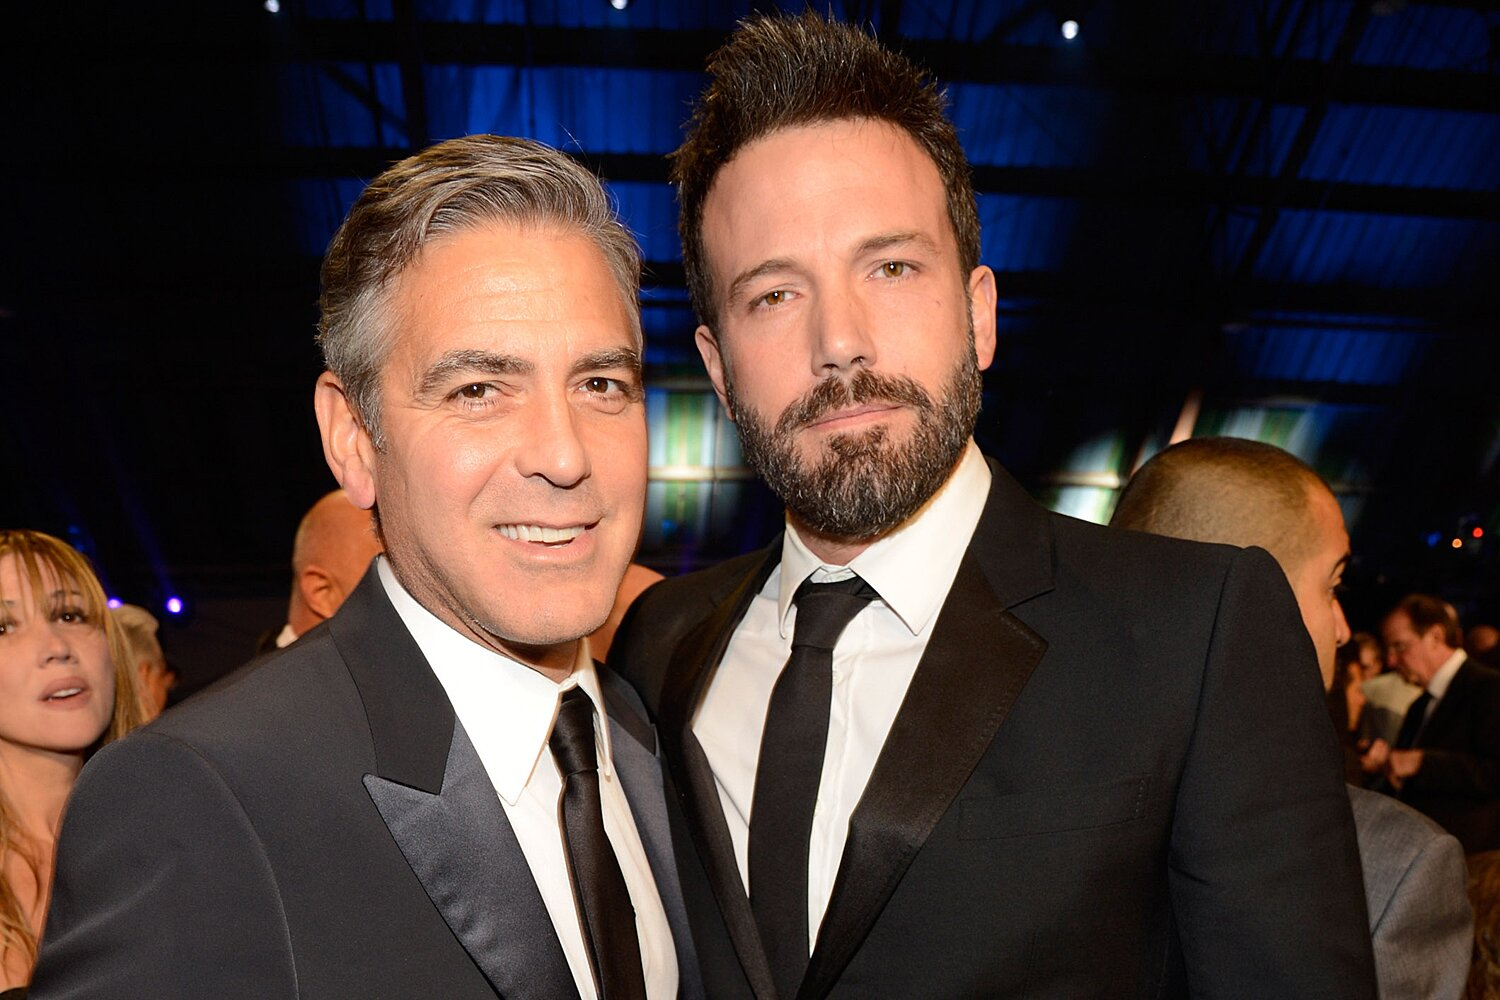 Ben Affleck in Talks to Star in George Clooney's Film Adaptation of The Tender Bar Image?url=https%3A%2F%2Fstatic.onecms.io%2Fwp-content%2Fuploads%2Fsites%2F20%2F2020%2F12%2F10%2Faffleck-clooney-1